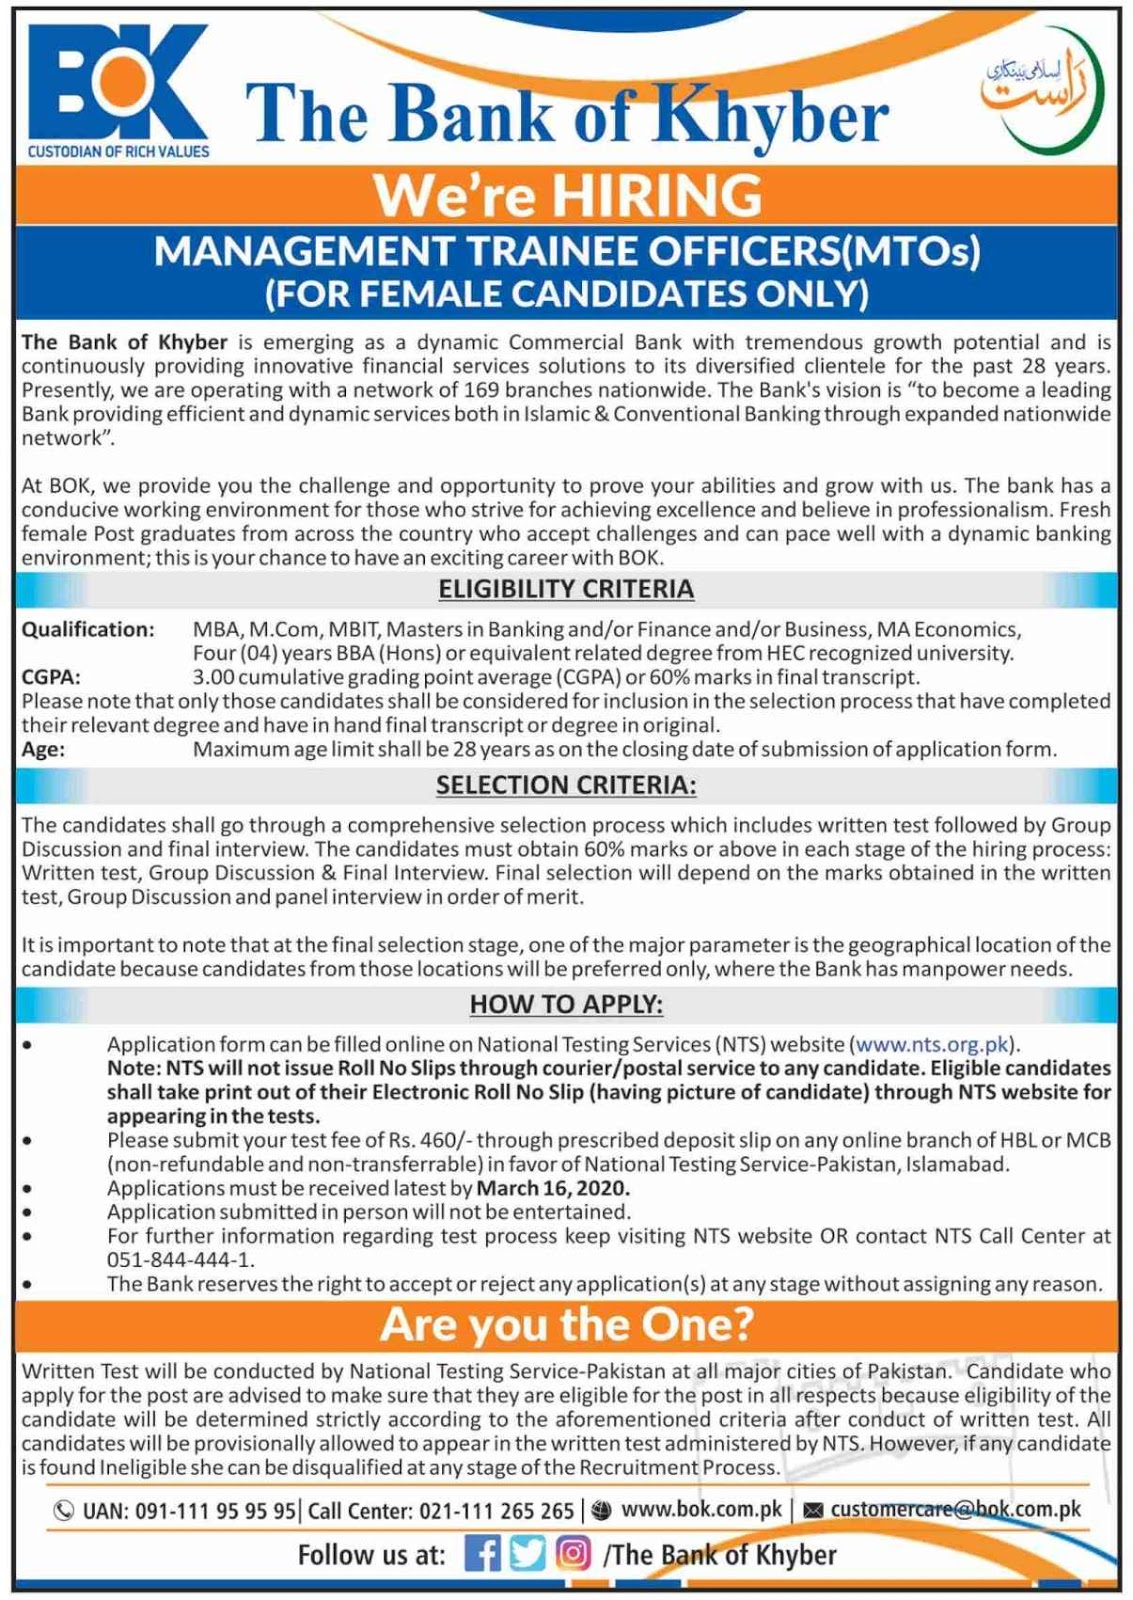 Management Trainee Officer (MTOs) Jobs for All Cities in Pakistan in The Bank of Khyber BOK Jobs 2020 via NTS Testing Service